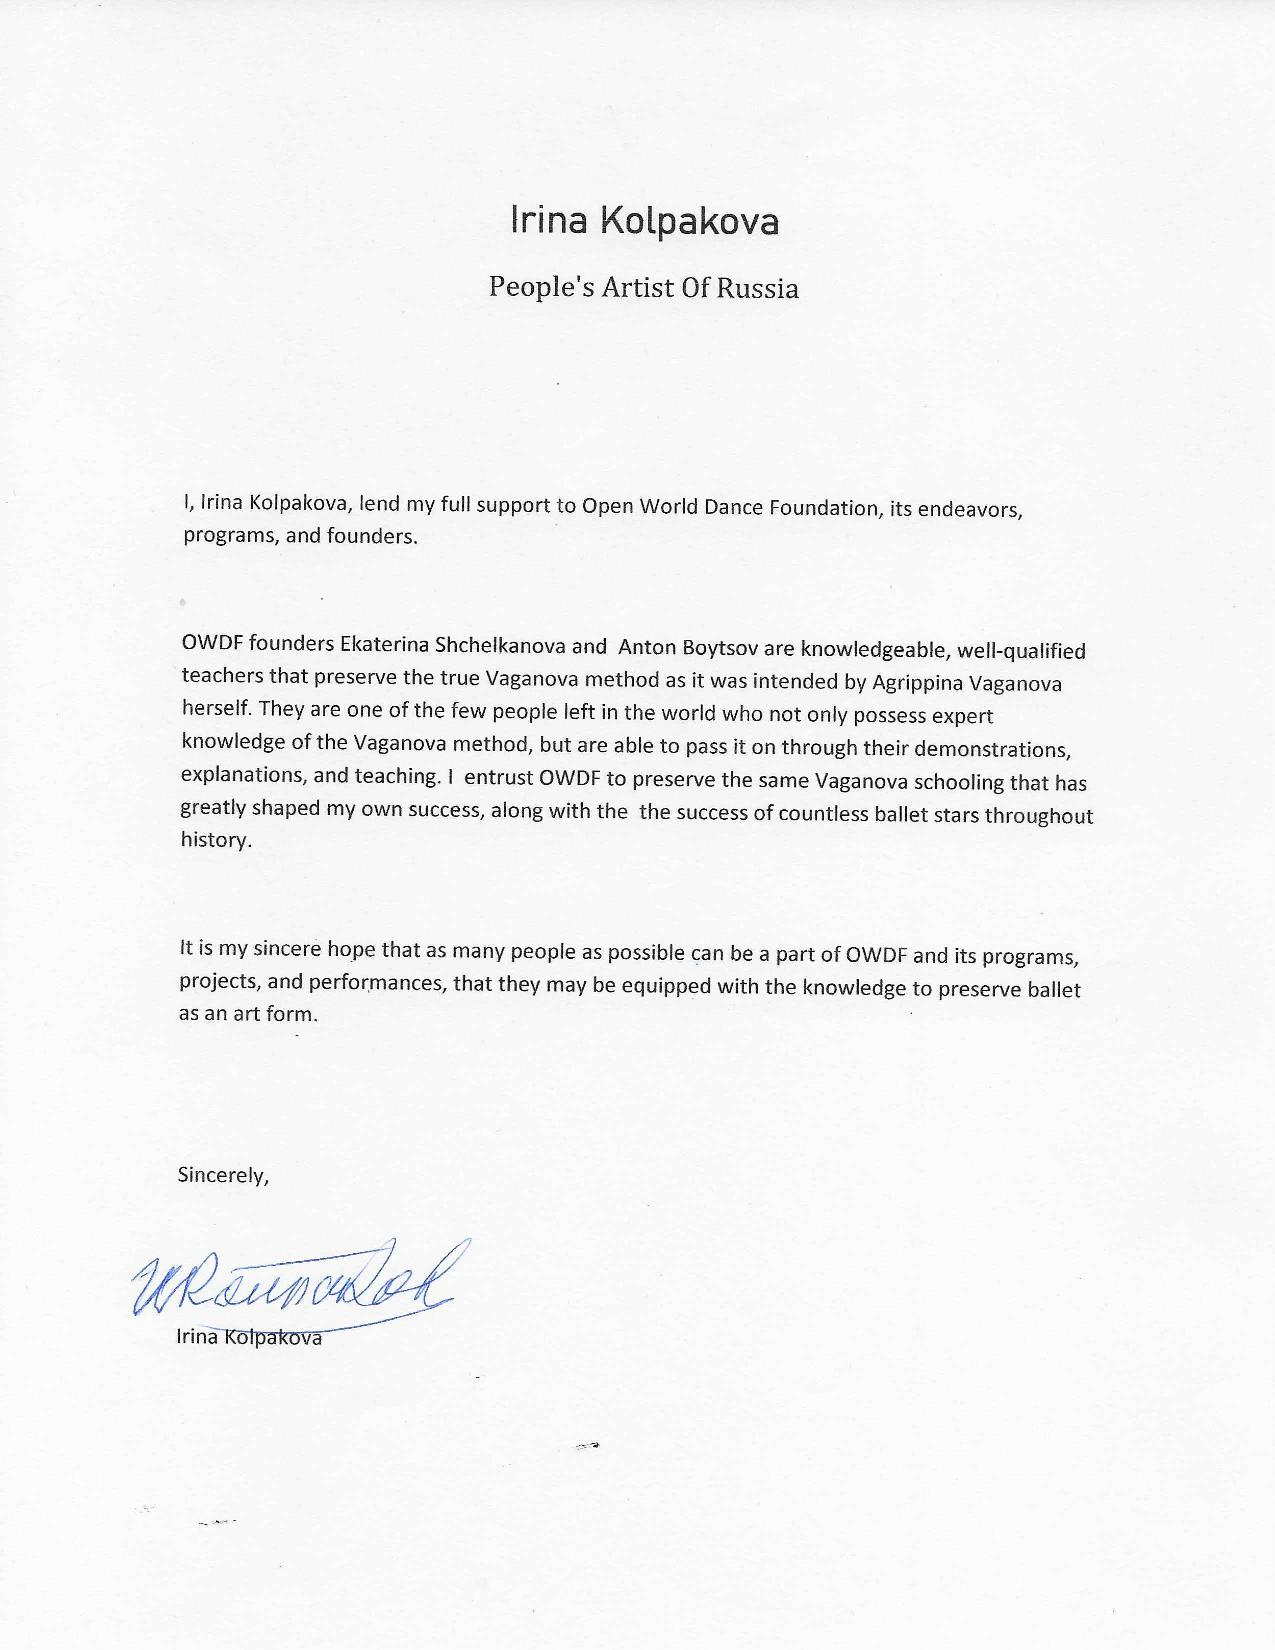 Irina Kolpakova signs Letter of Support for Open World Dance Foundation